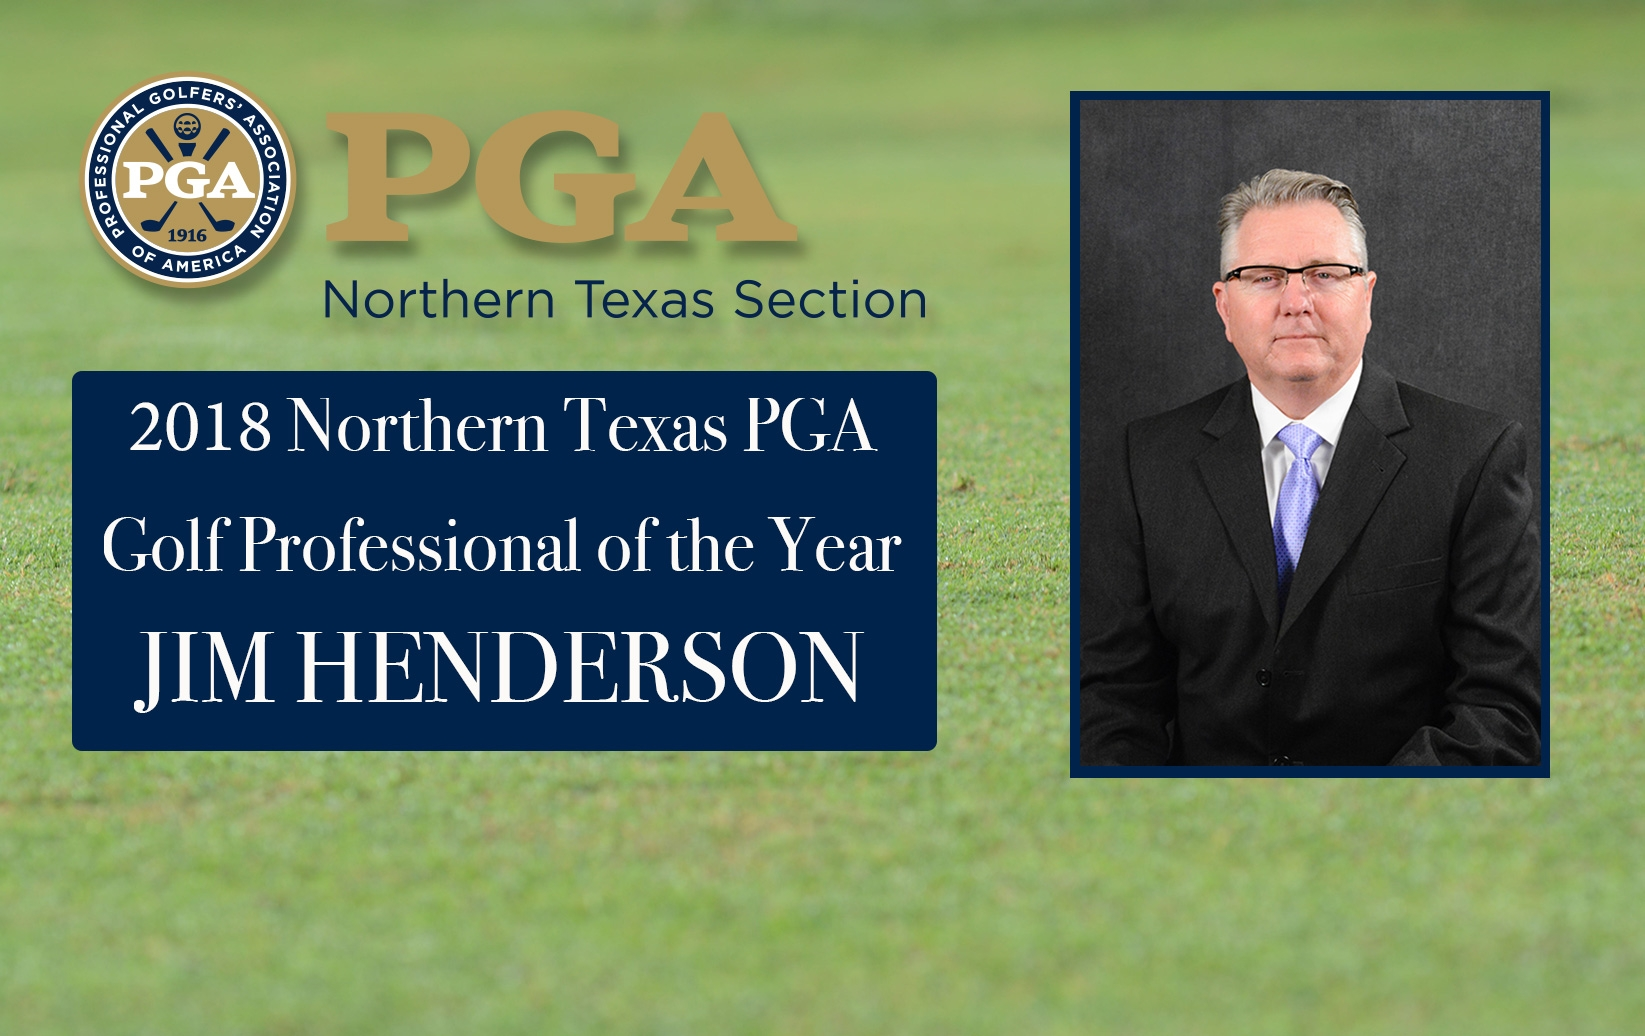 2018 Northern Texas PGA Section Award Winners Announced, Jim Henderson Named Golf Professional of the Year